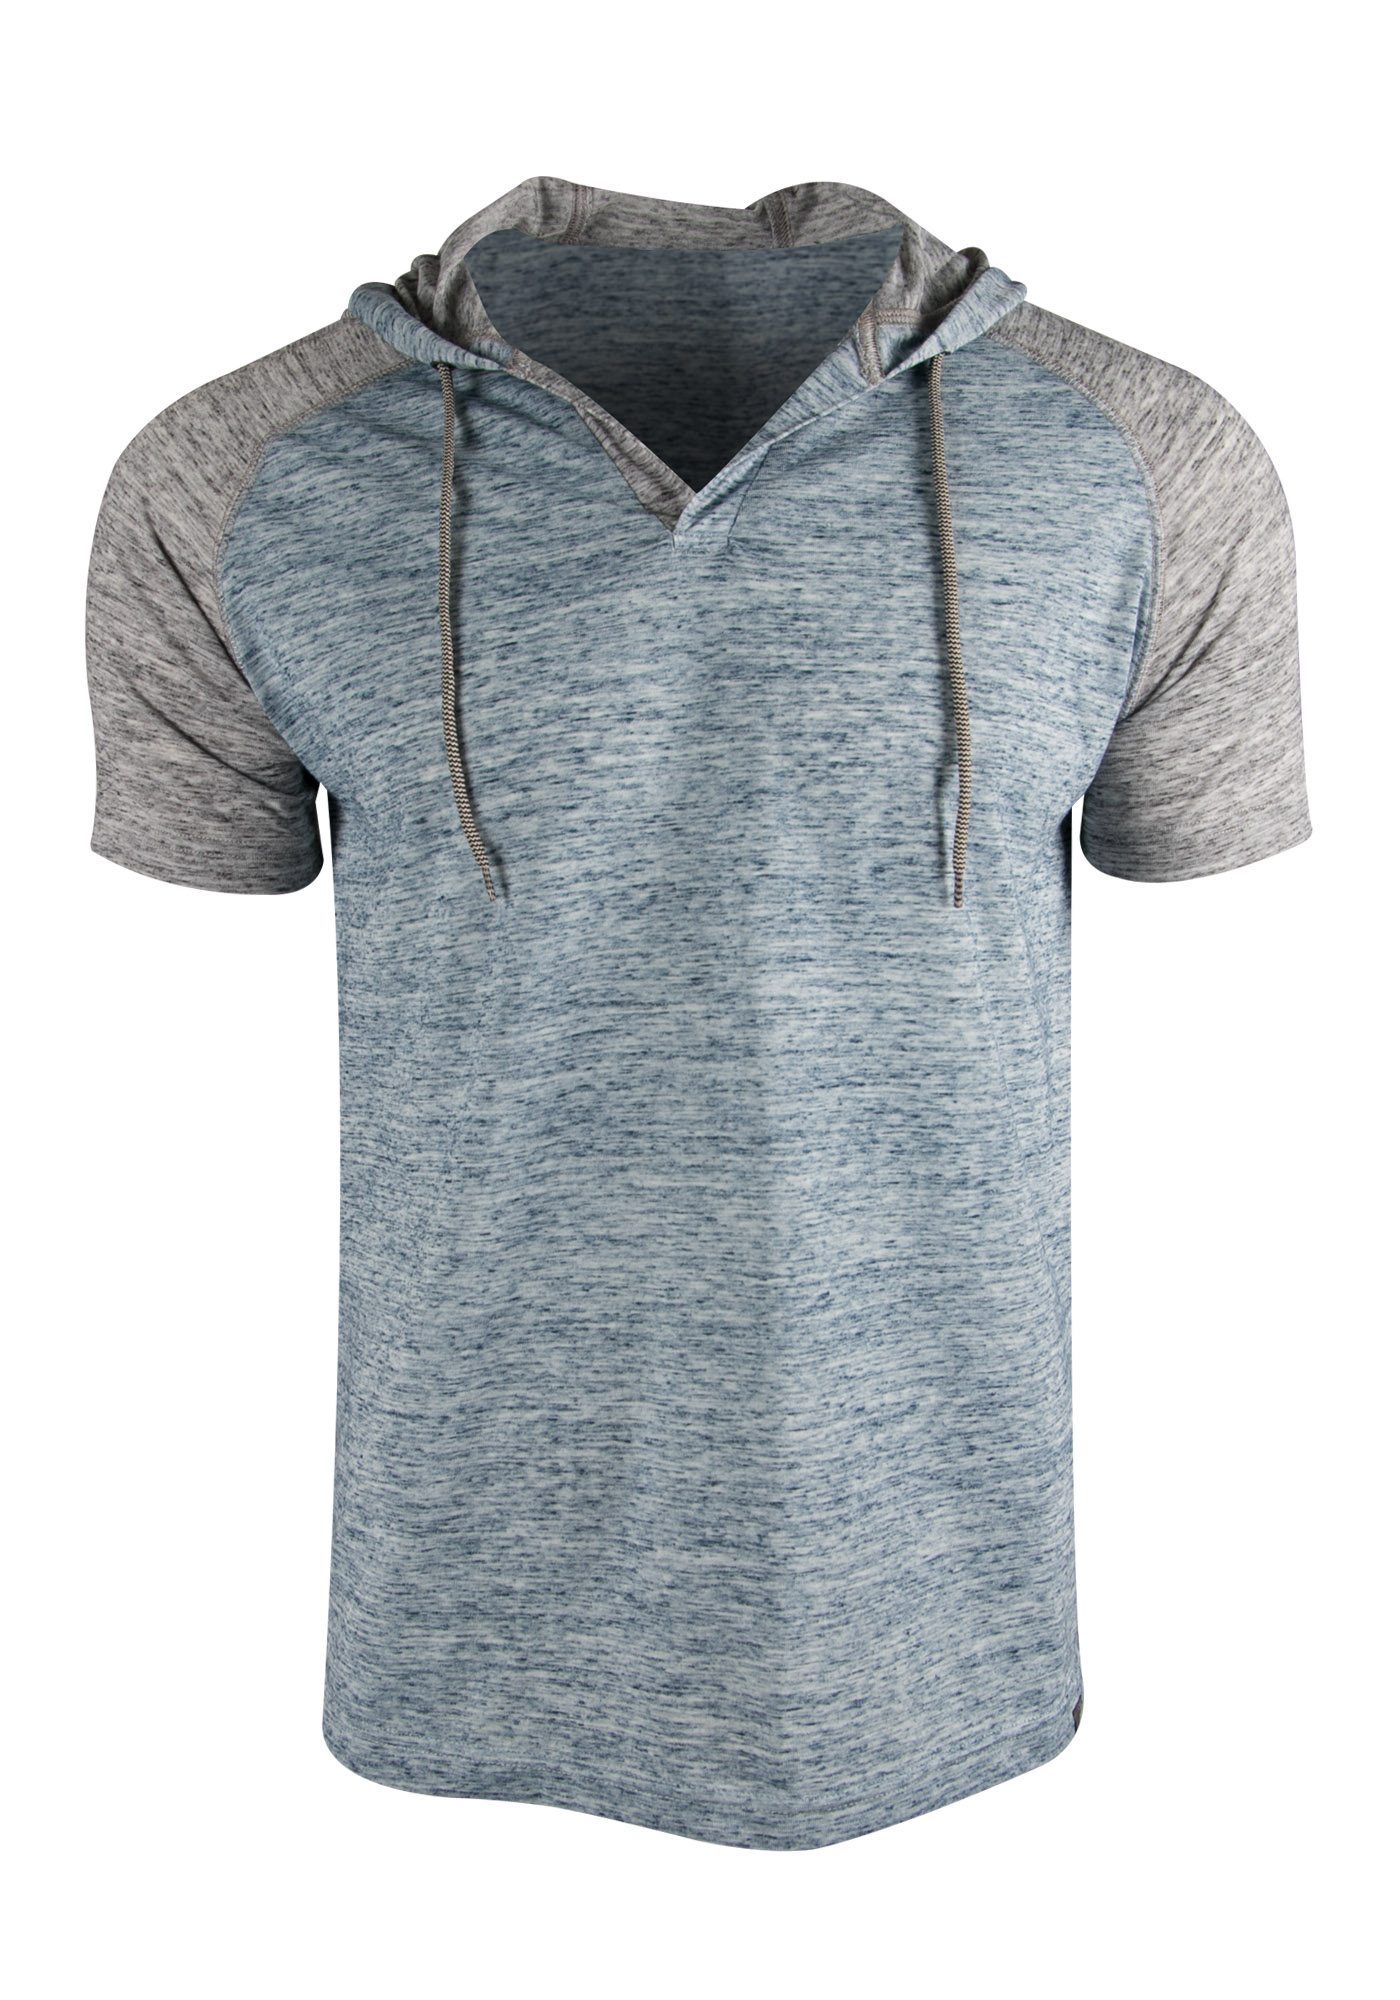 Men's Hooded Raglan Tee, BLUE, hi-res